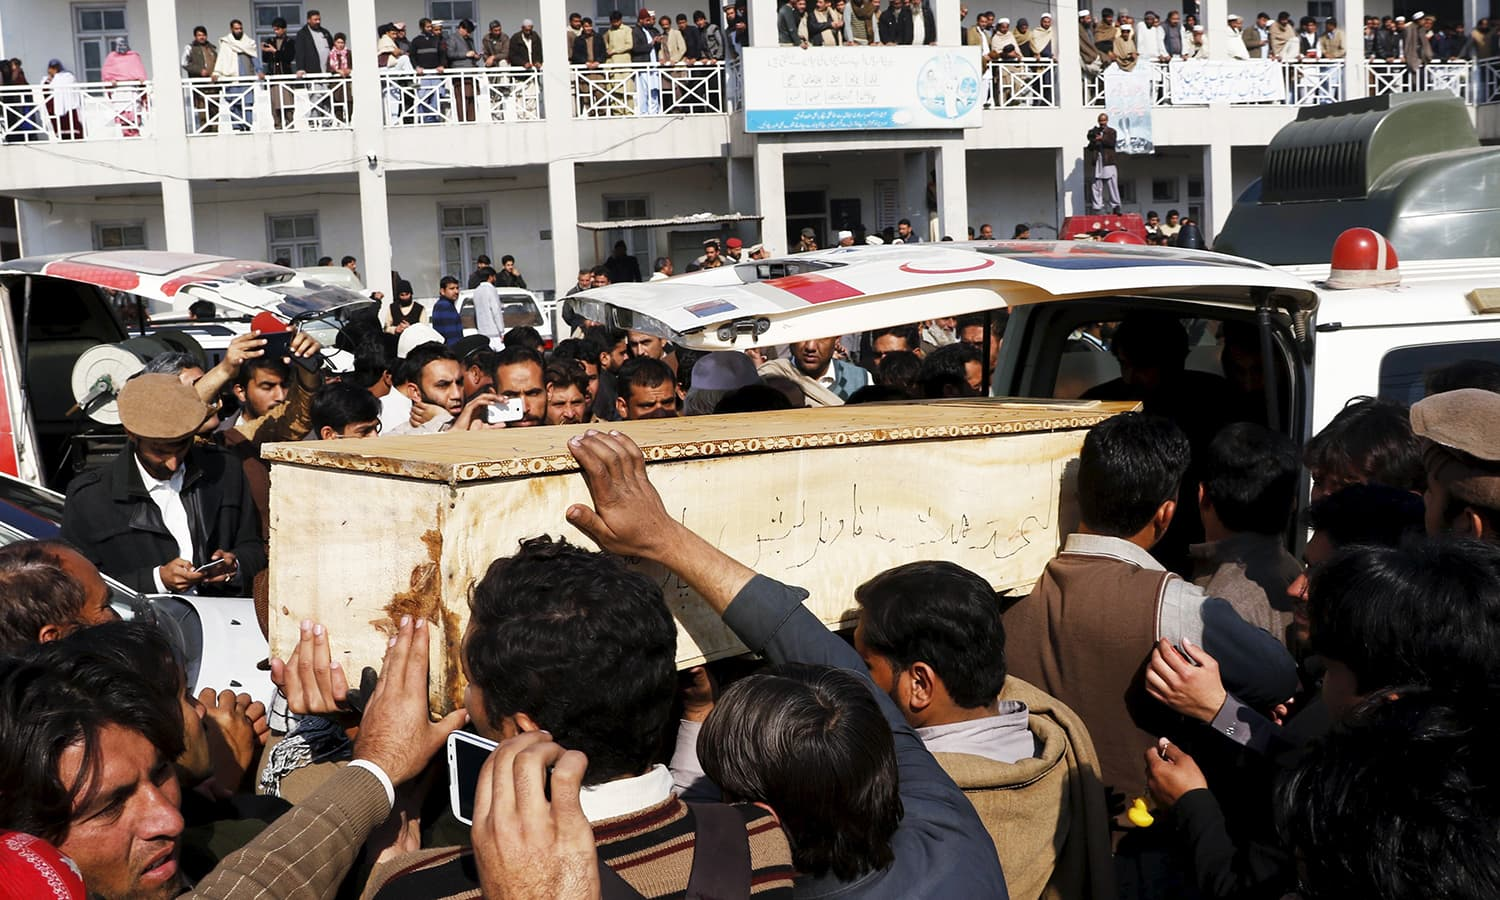 Relatives and friends surround the coffin of a student, who was killed in a militant attack at Bacha Khan University, outside a hospital in Charsadda. -Reuters